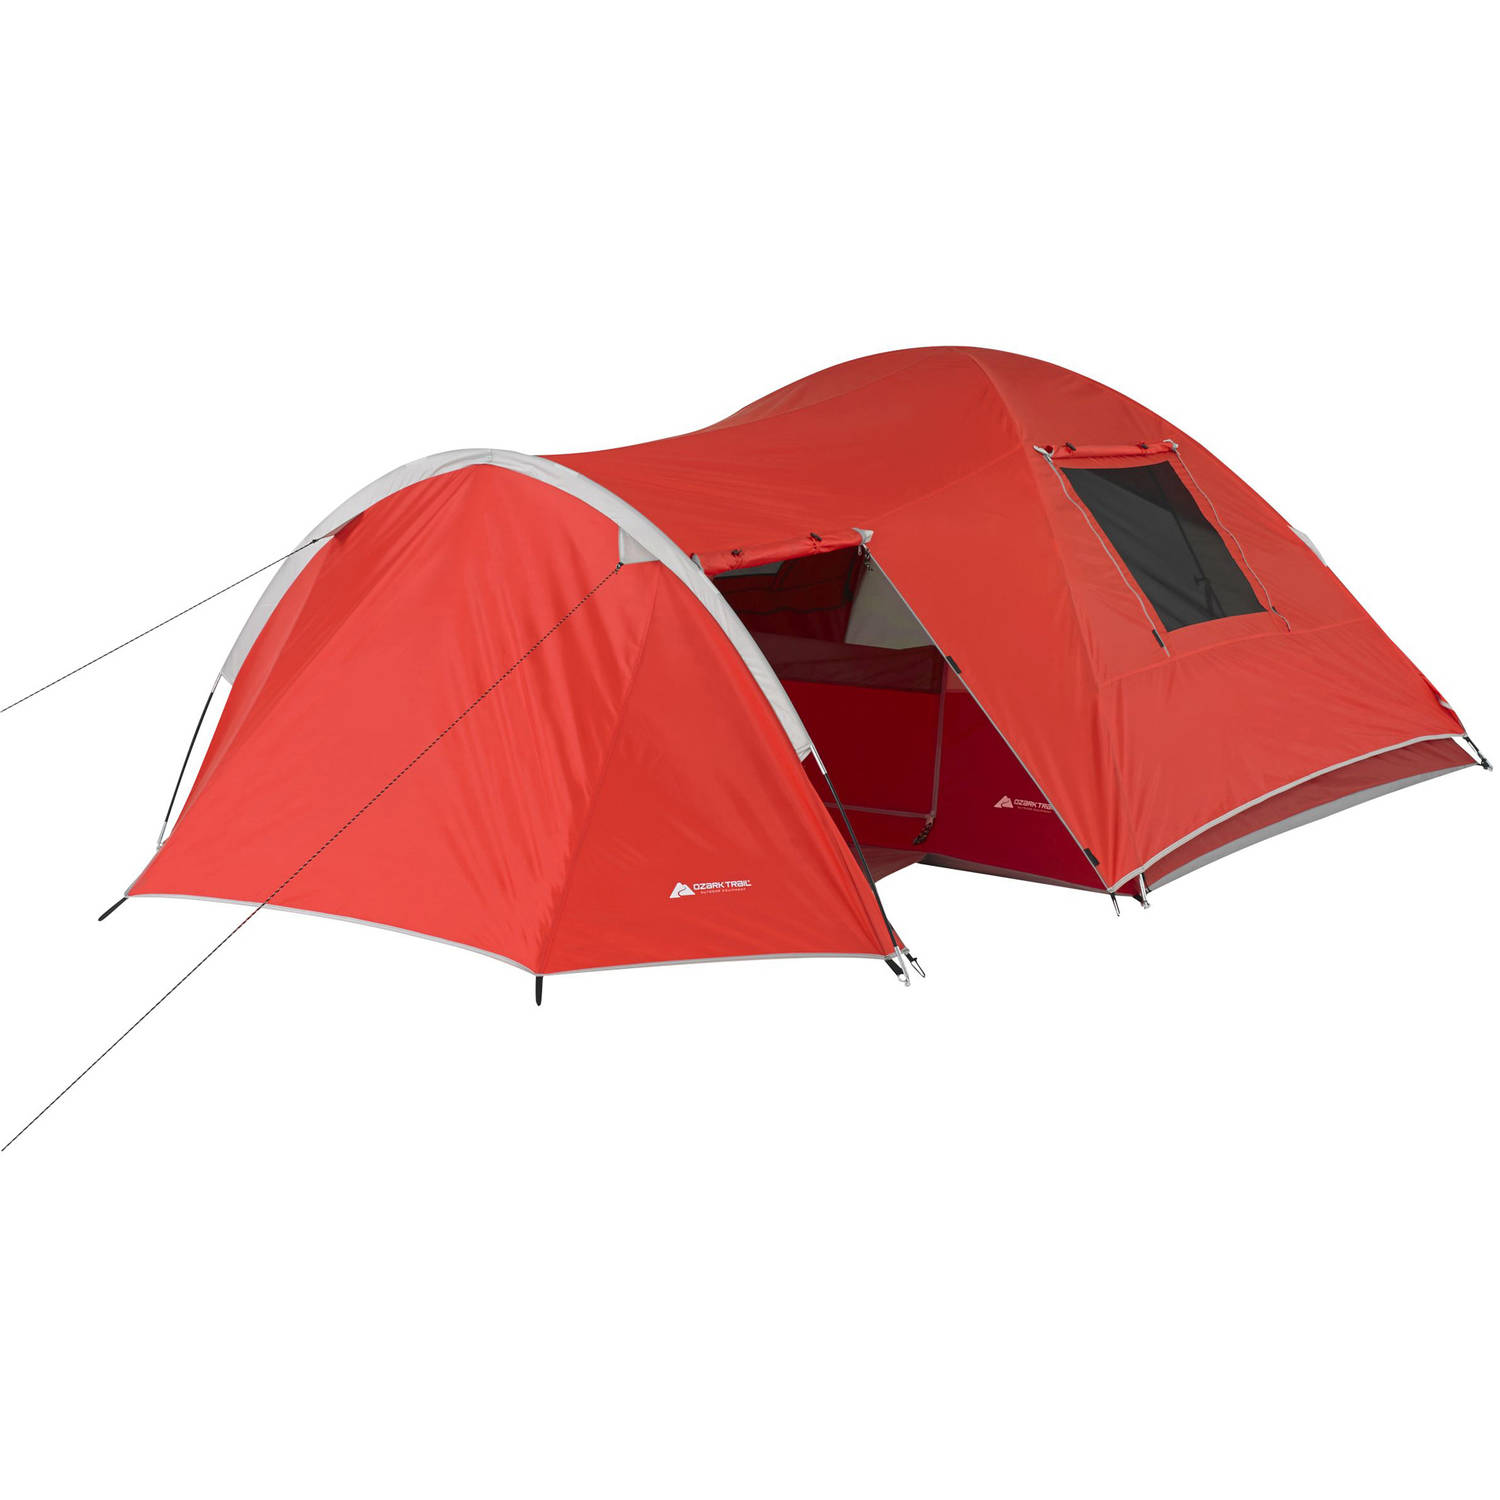 Ozark Trail 4-Person Dome Tent with Vestibule and Full Coverage Fly  sc 1 st  Walmart.com & Ozark Trail 4-Person Dome Tent with Vestibule and Full Coverage ...